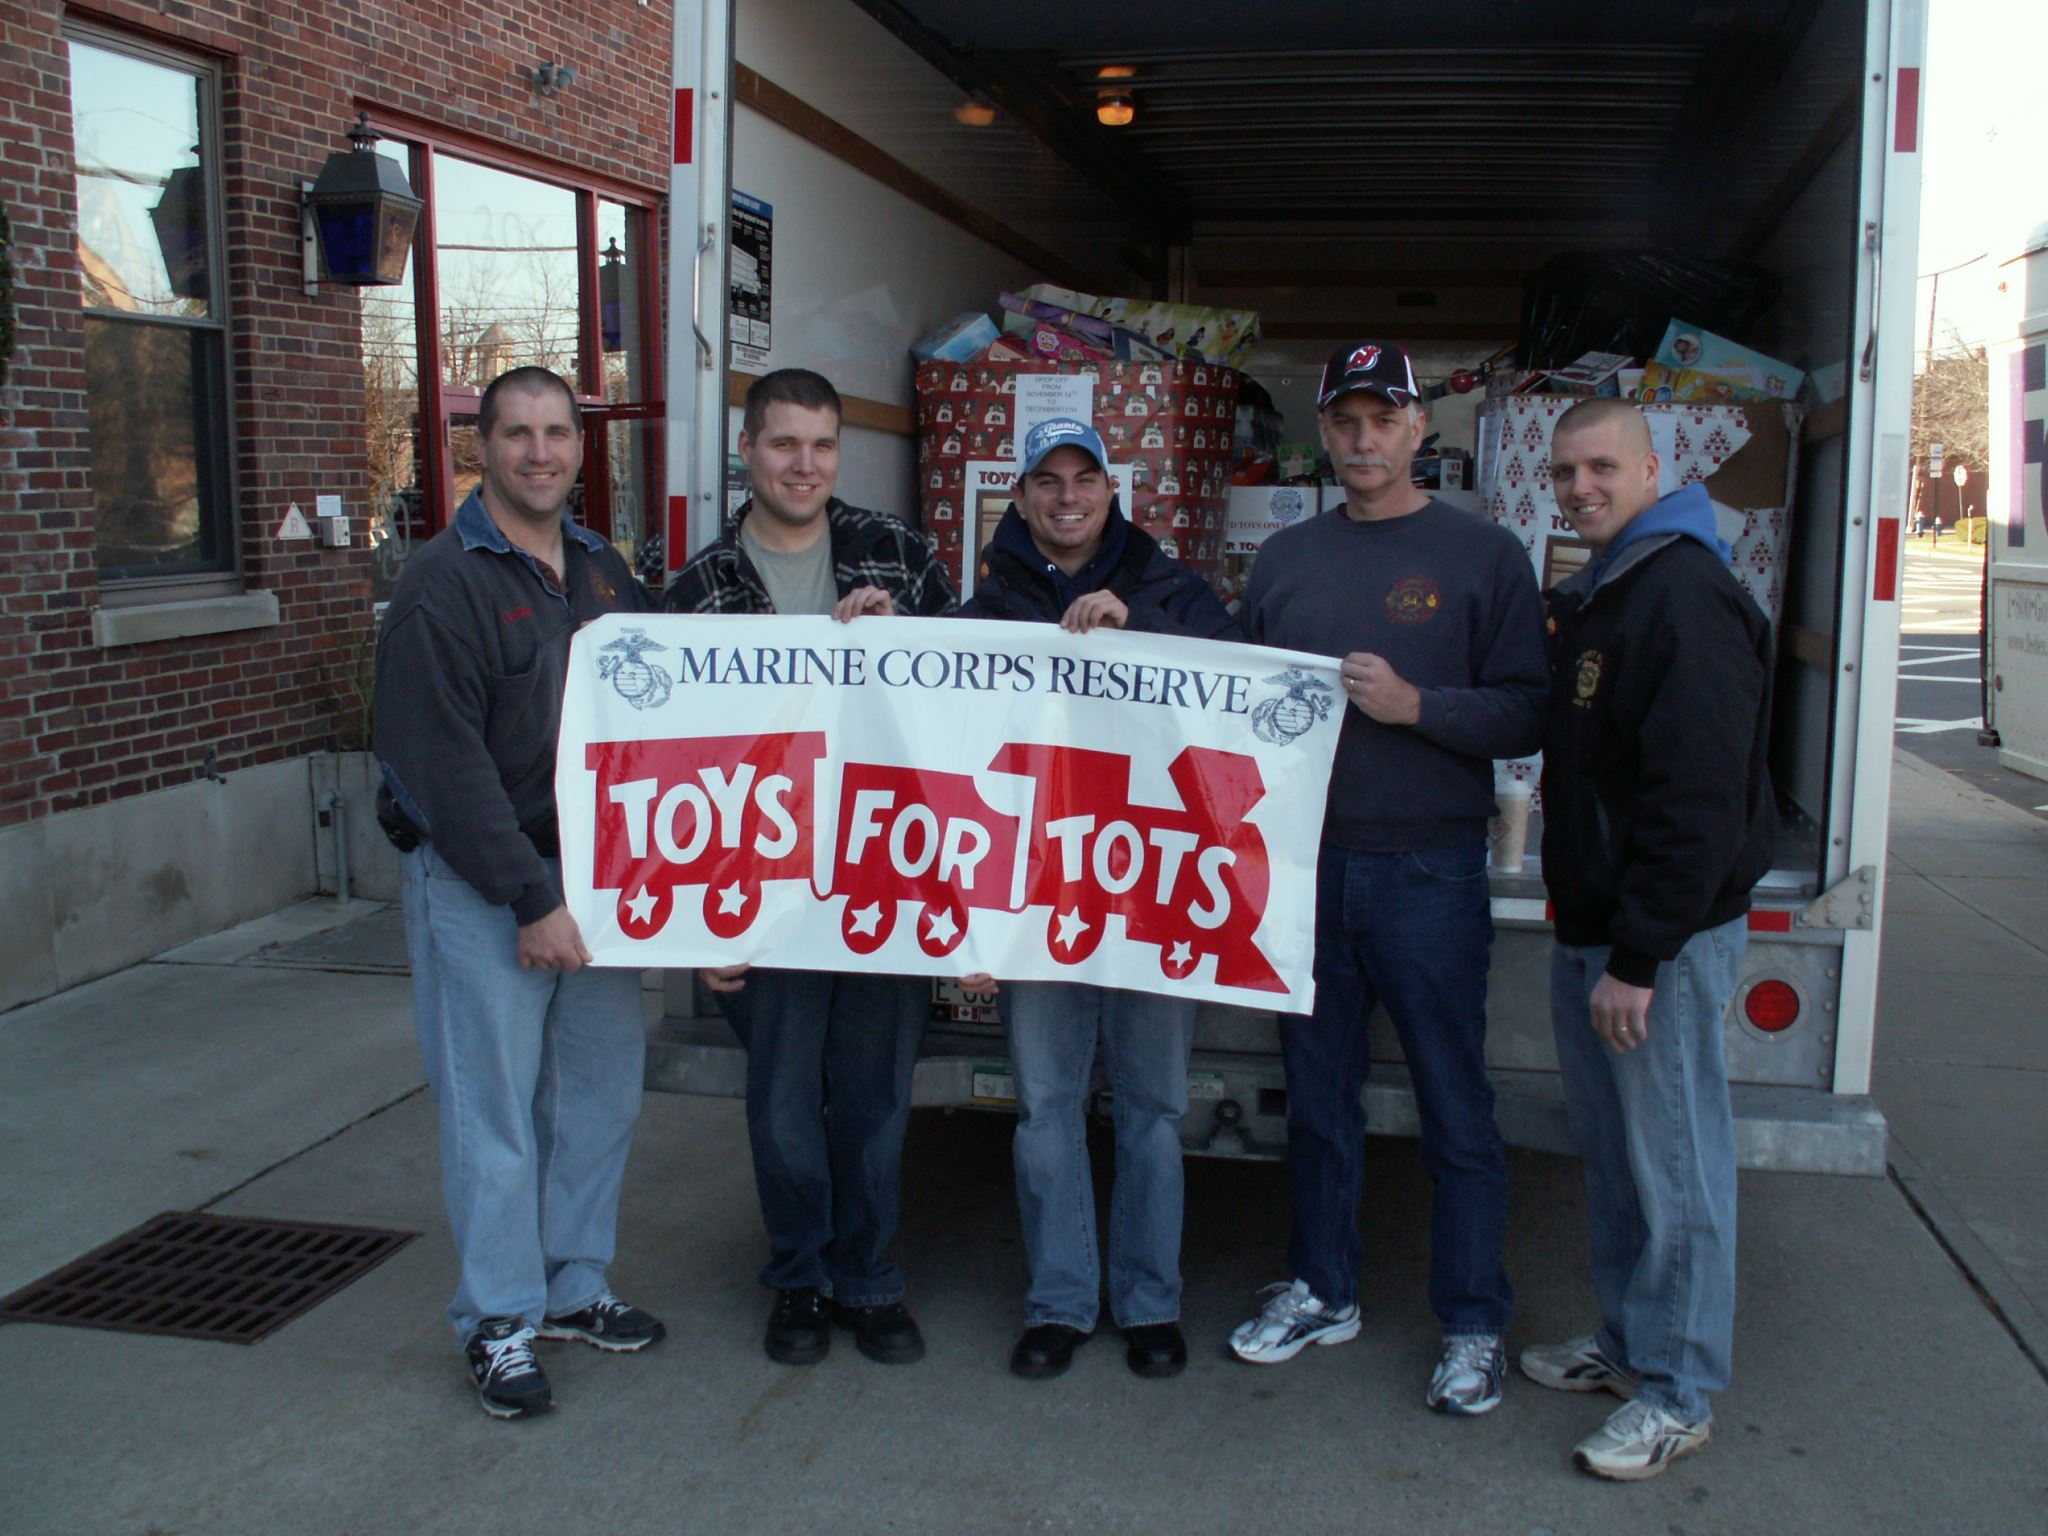 Group holding Toys for Tots sign